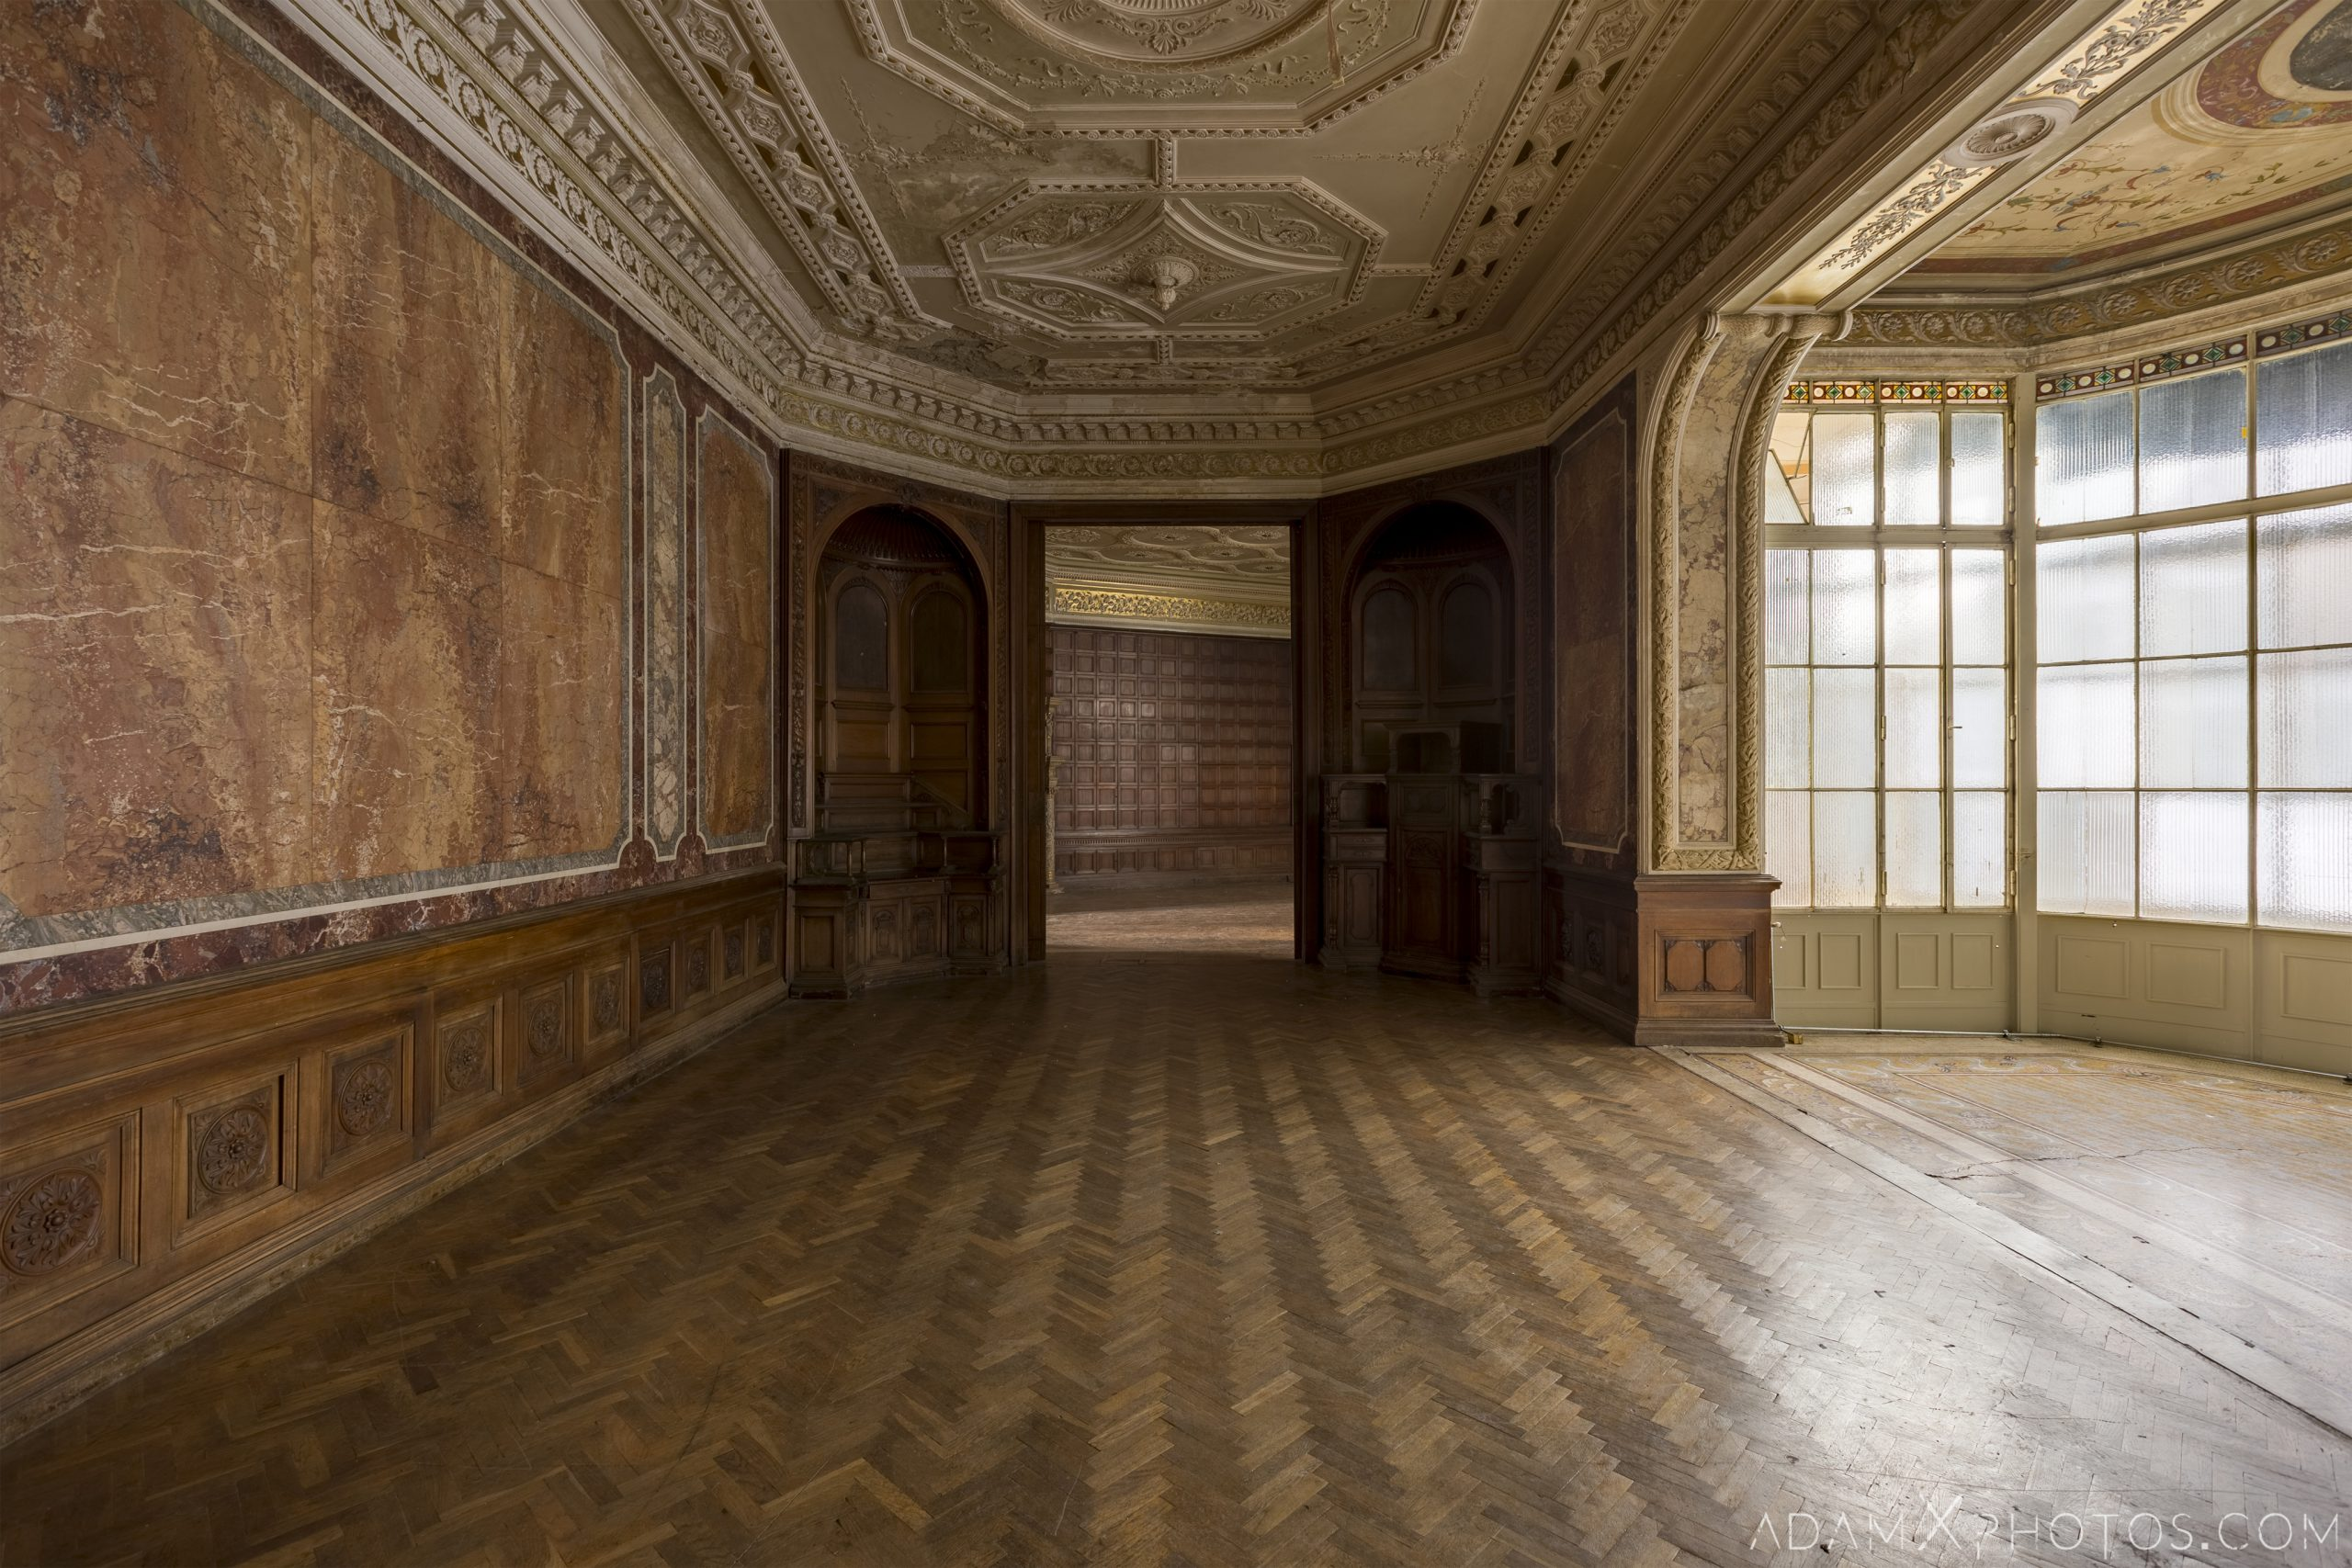 Bay window parquet marble opulent Adria Palace Budapest Hungary Adam X Urbex Urban Exploration Access 2018 Blade Runner 2049 Abandoned decay ruins lost forgotten derelict location creepy haunting eerie security ornate grand neo baroque